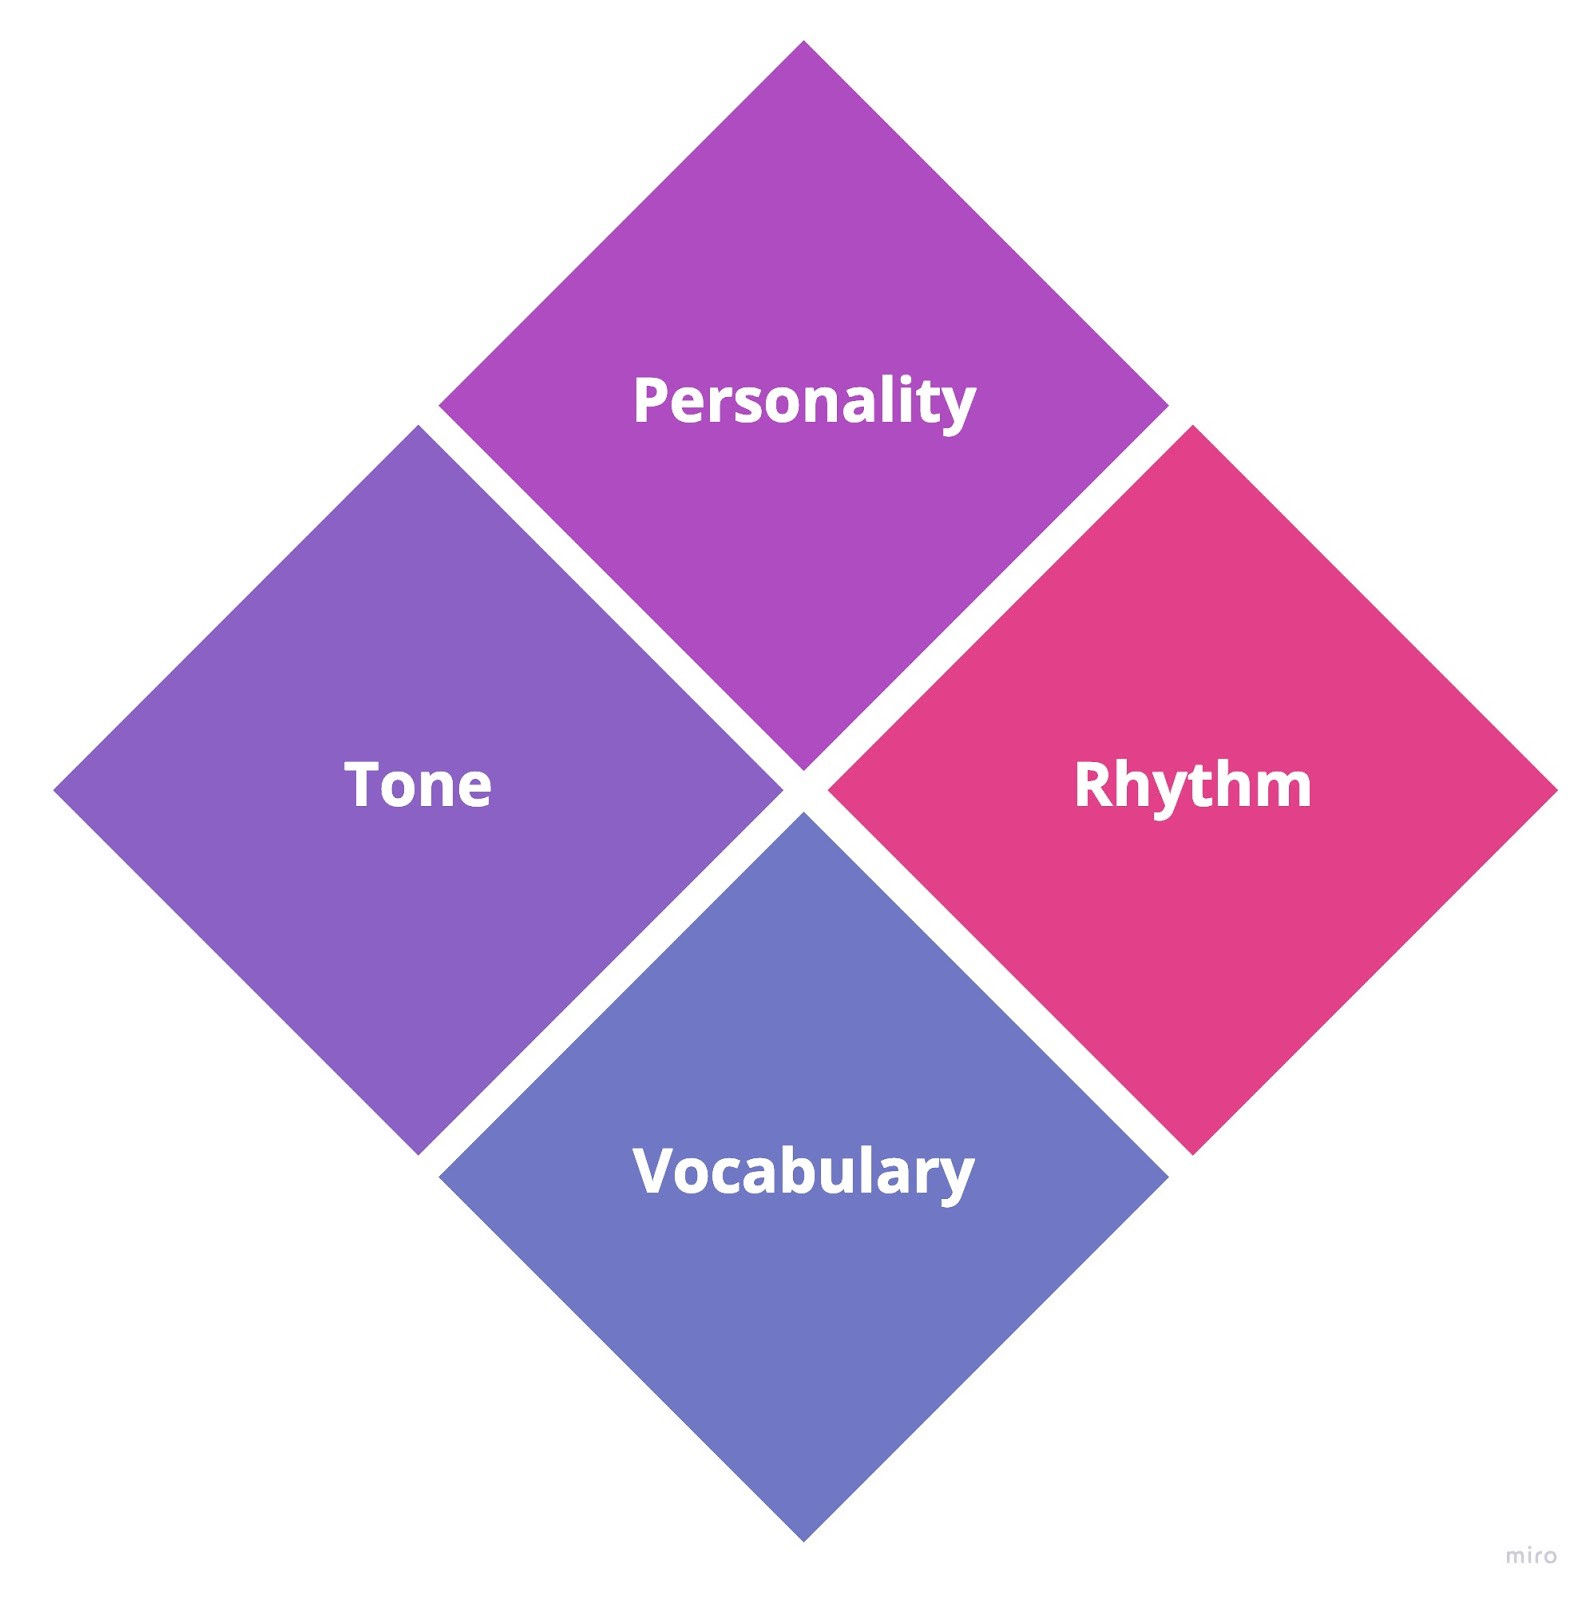 The image shows four diamonds with the words personality, tone, rhythm and vocabulary in them.